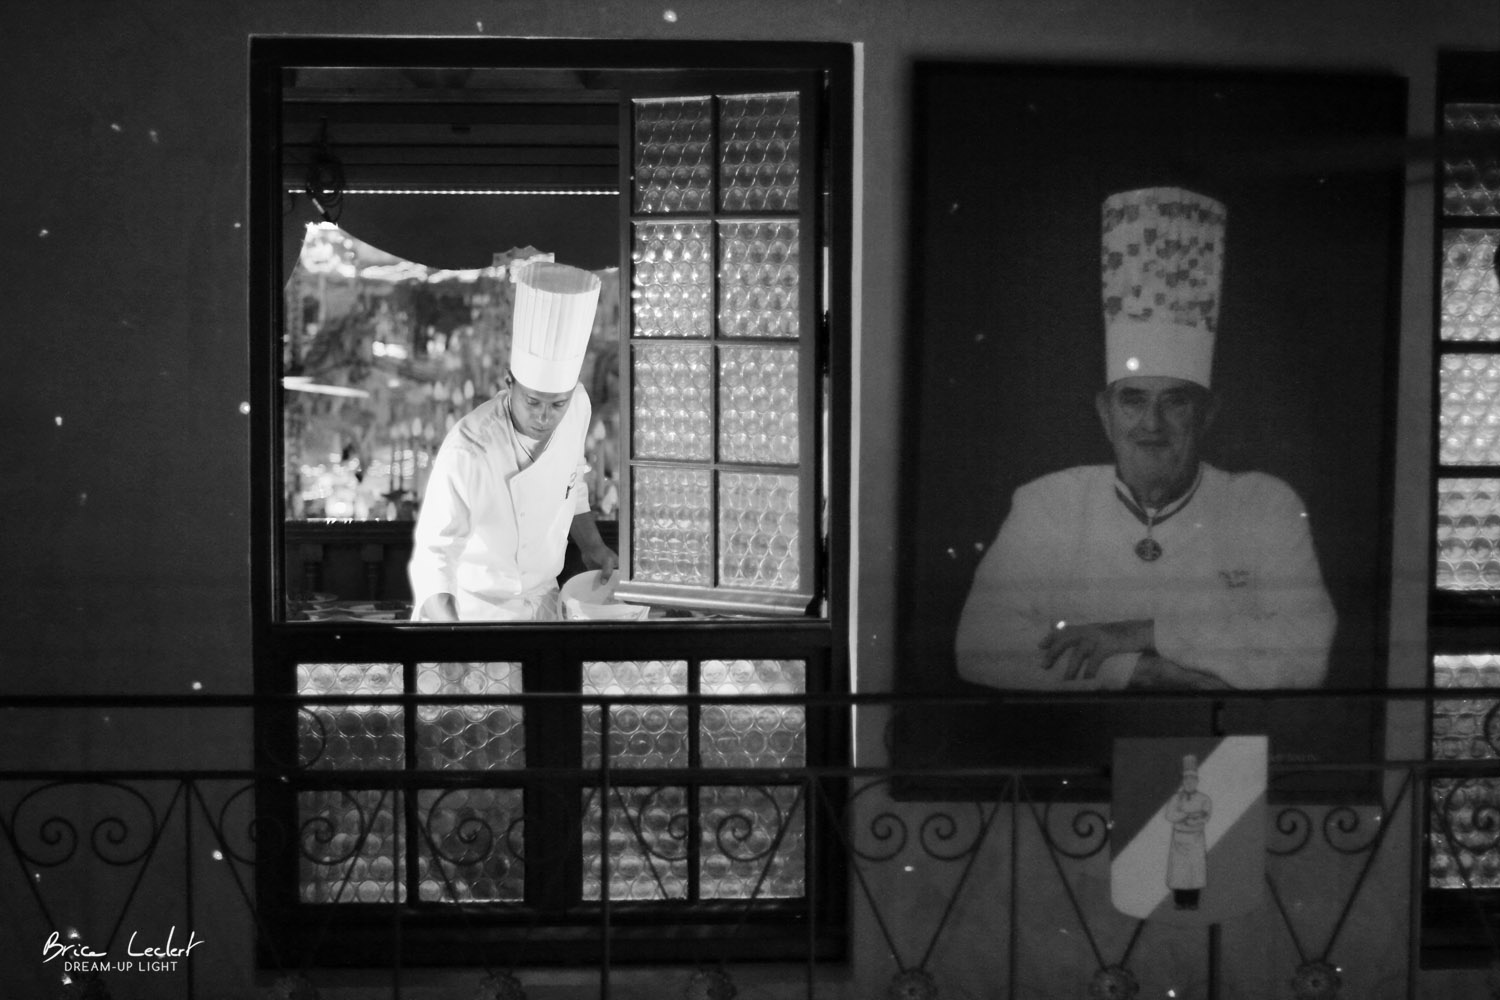 Une photo qui prend du sens, Paul Bocuse